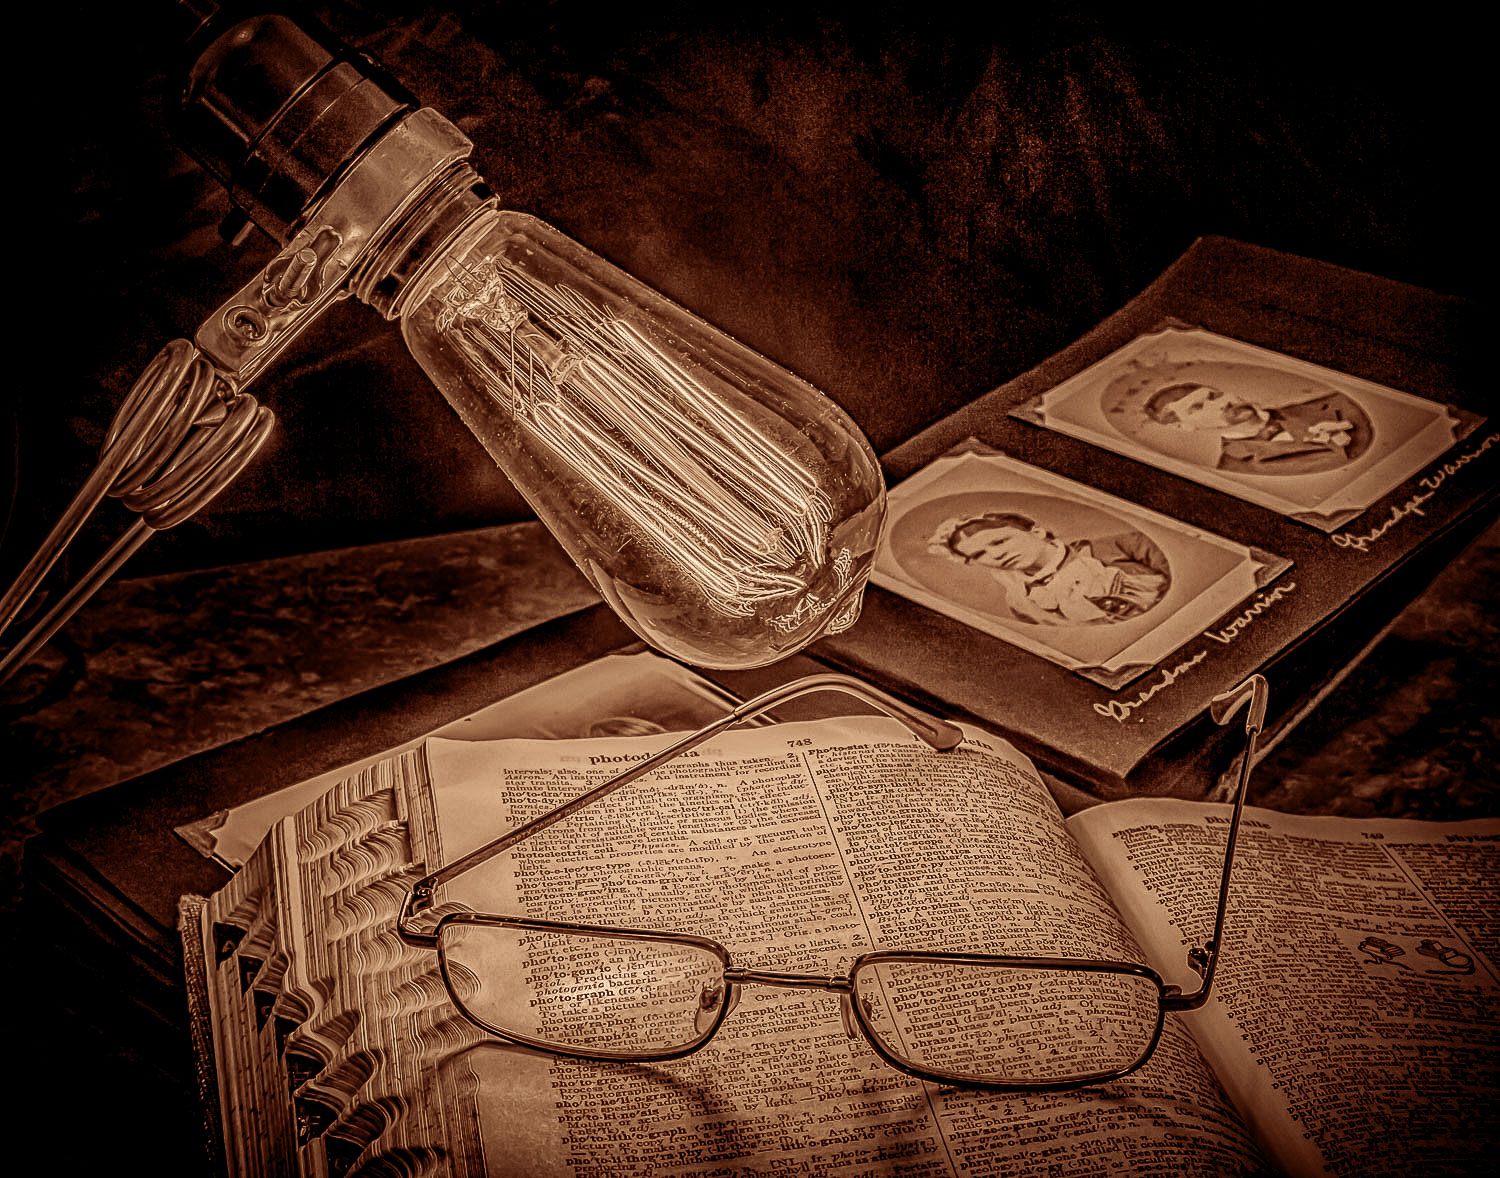 black and white still life photography light and old book